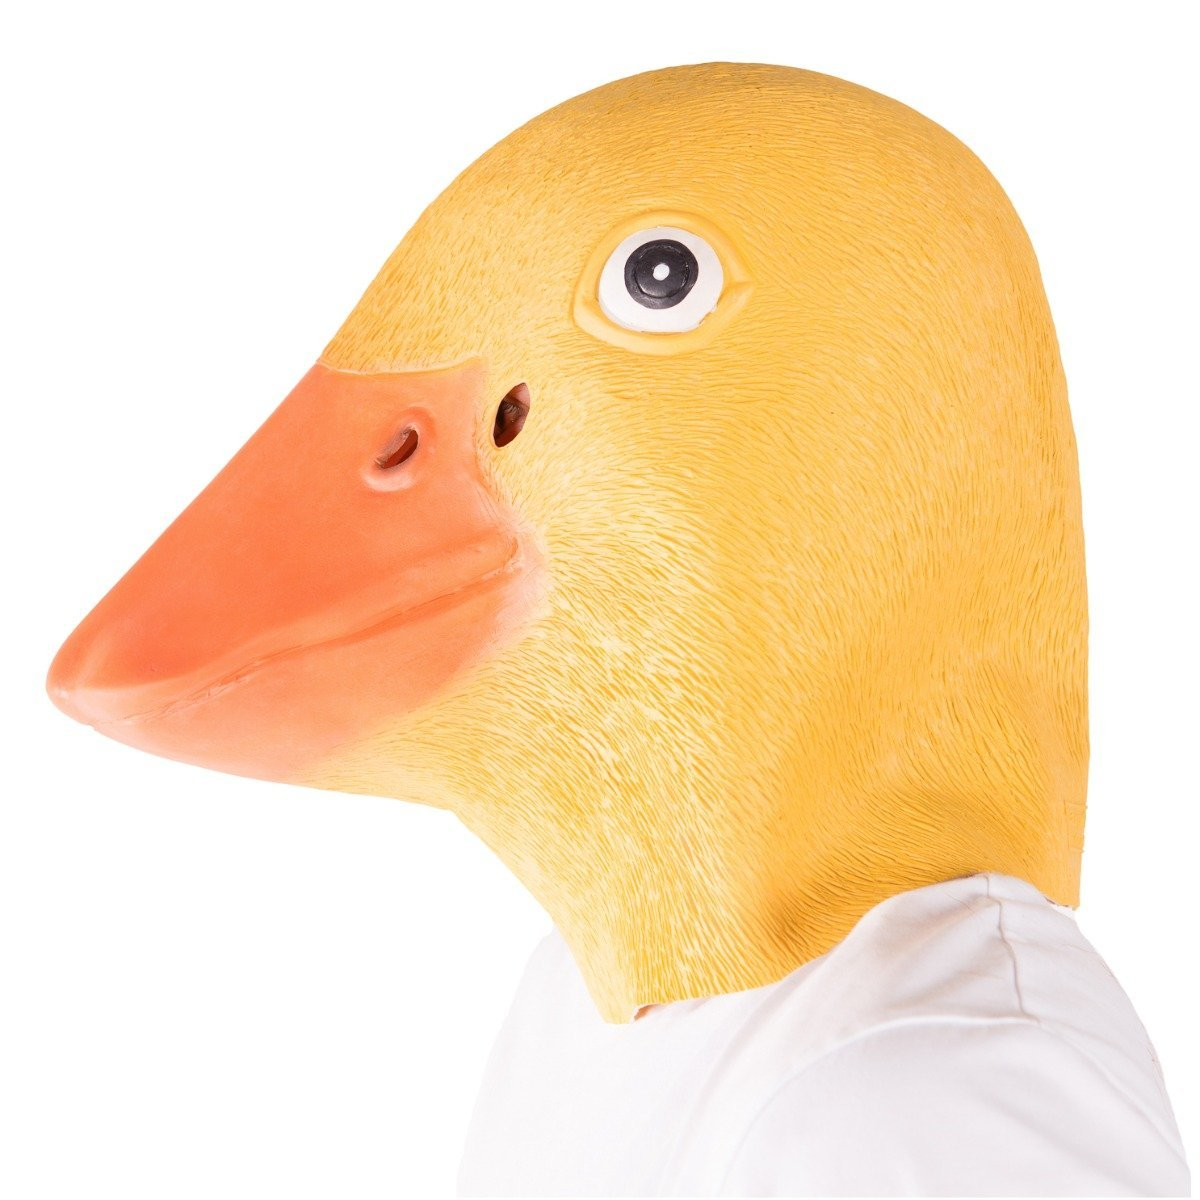 Bodysocks - Latex Duck Mask